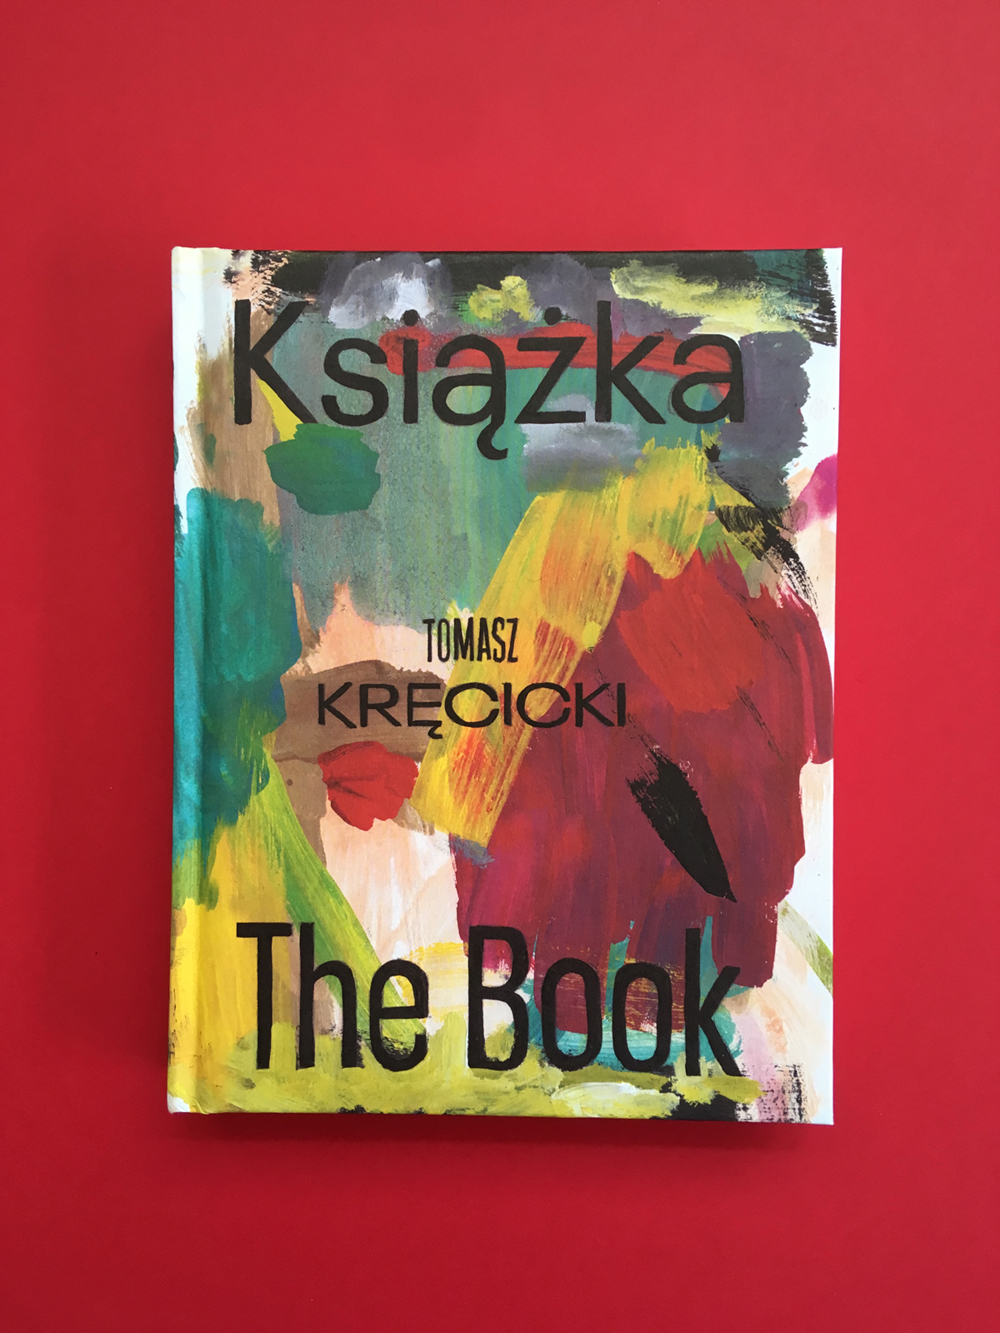 Ksiazka – The Book — Tomasz Krecicki